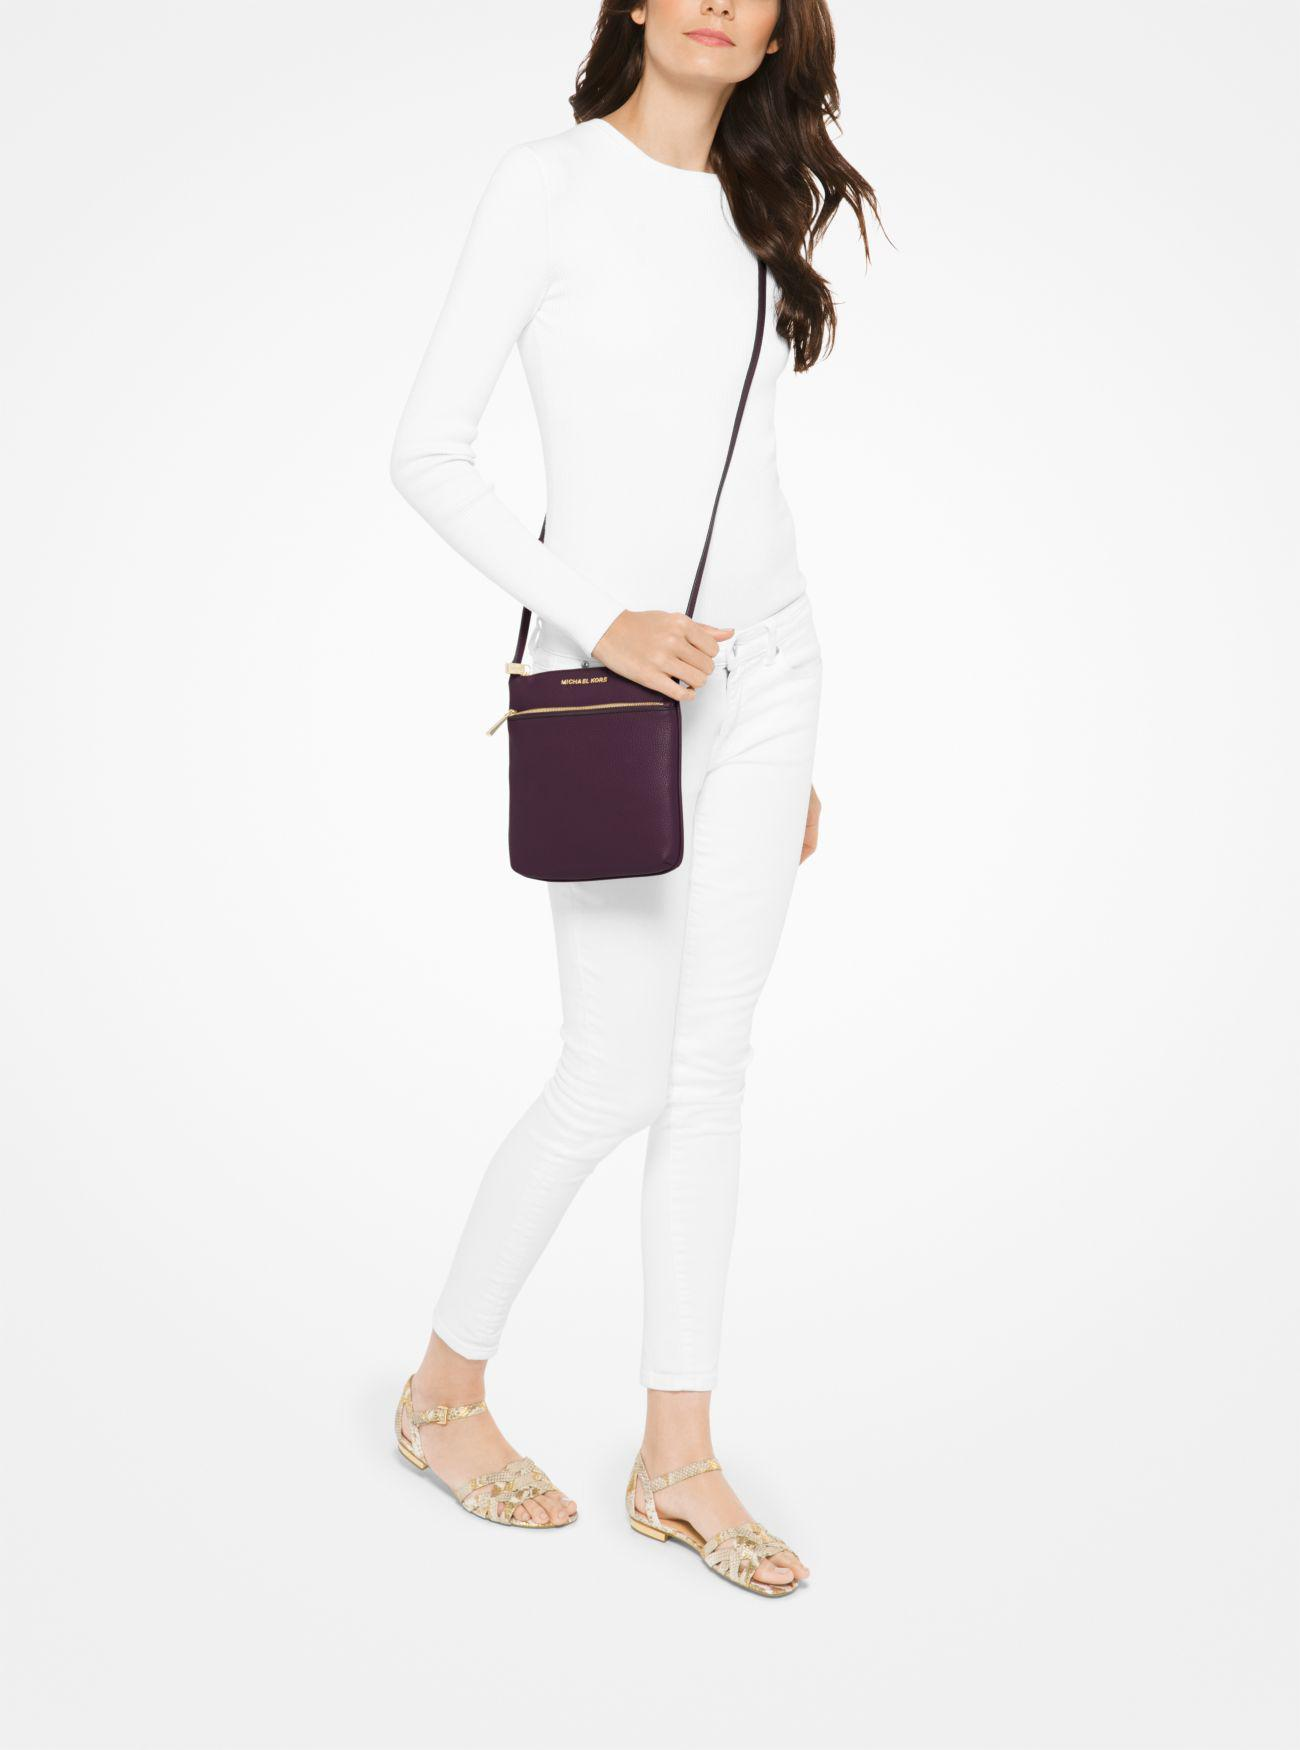 Lyst - Michael Kors Riley Small Pebbled-leather Crossbody 4e1bfa3ef